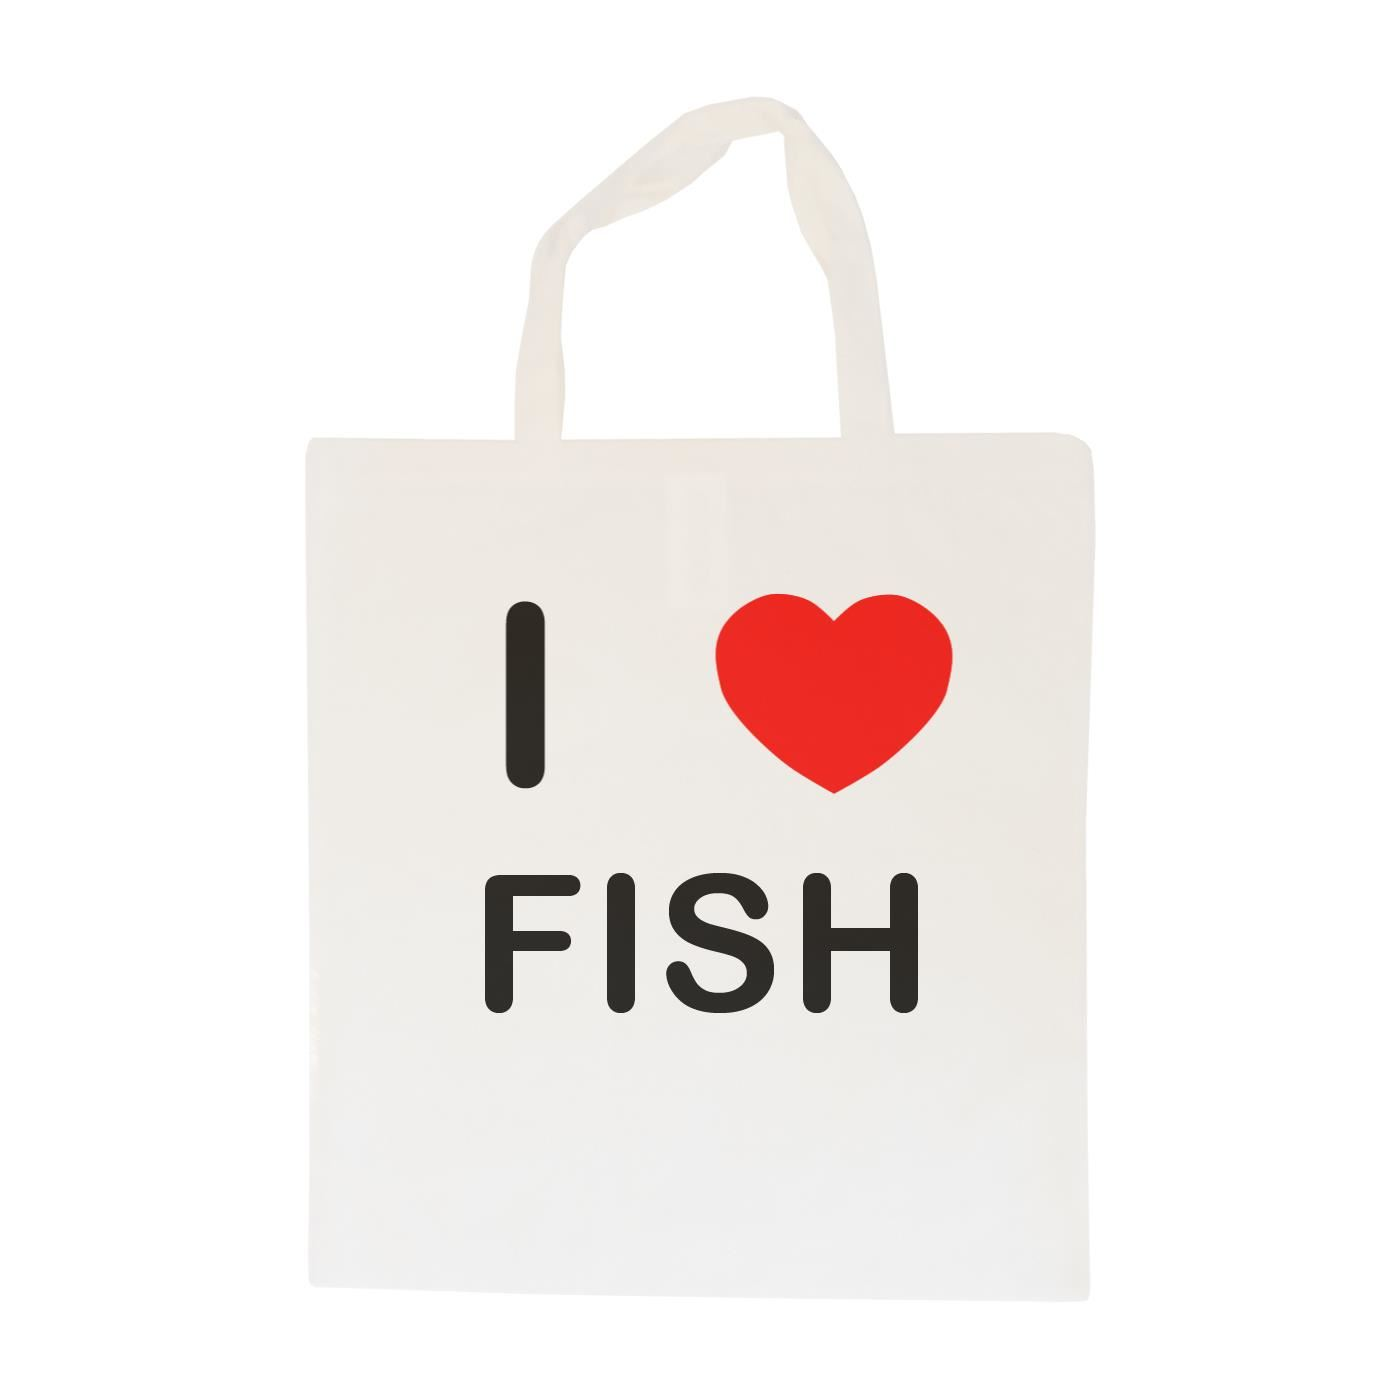 I Love Fish - Cotton Bag | Size choice Tote, Shopper or Sling